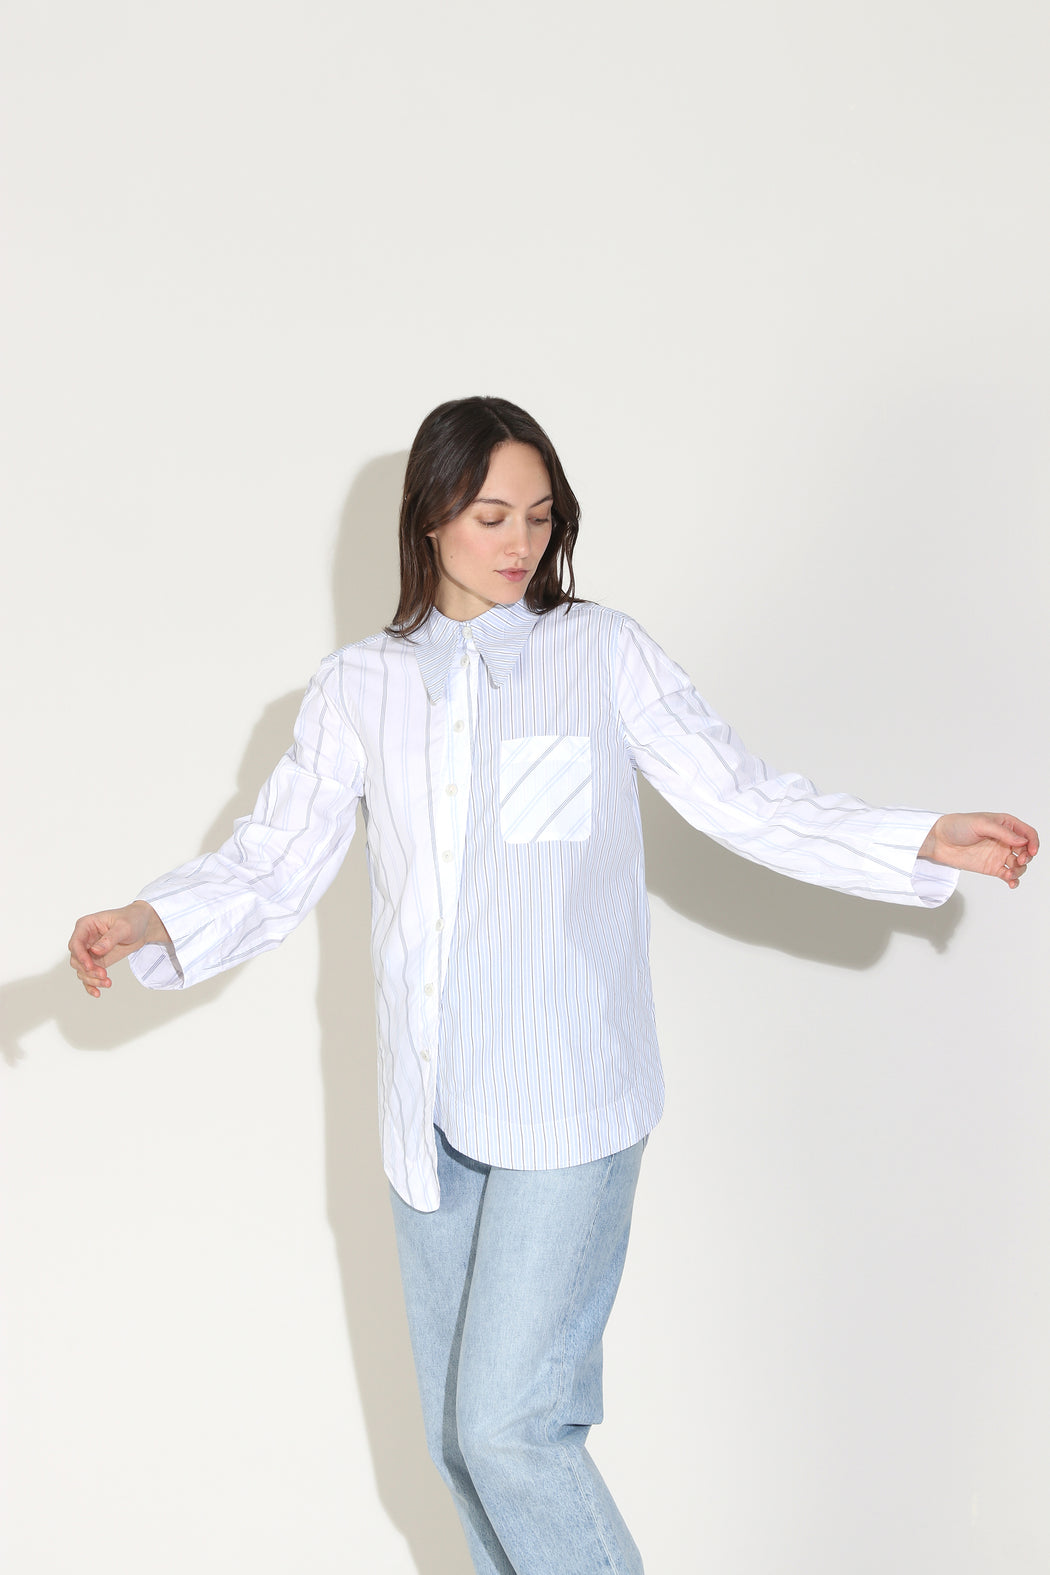 Ganni Shirting Cotton Shirt White Blue